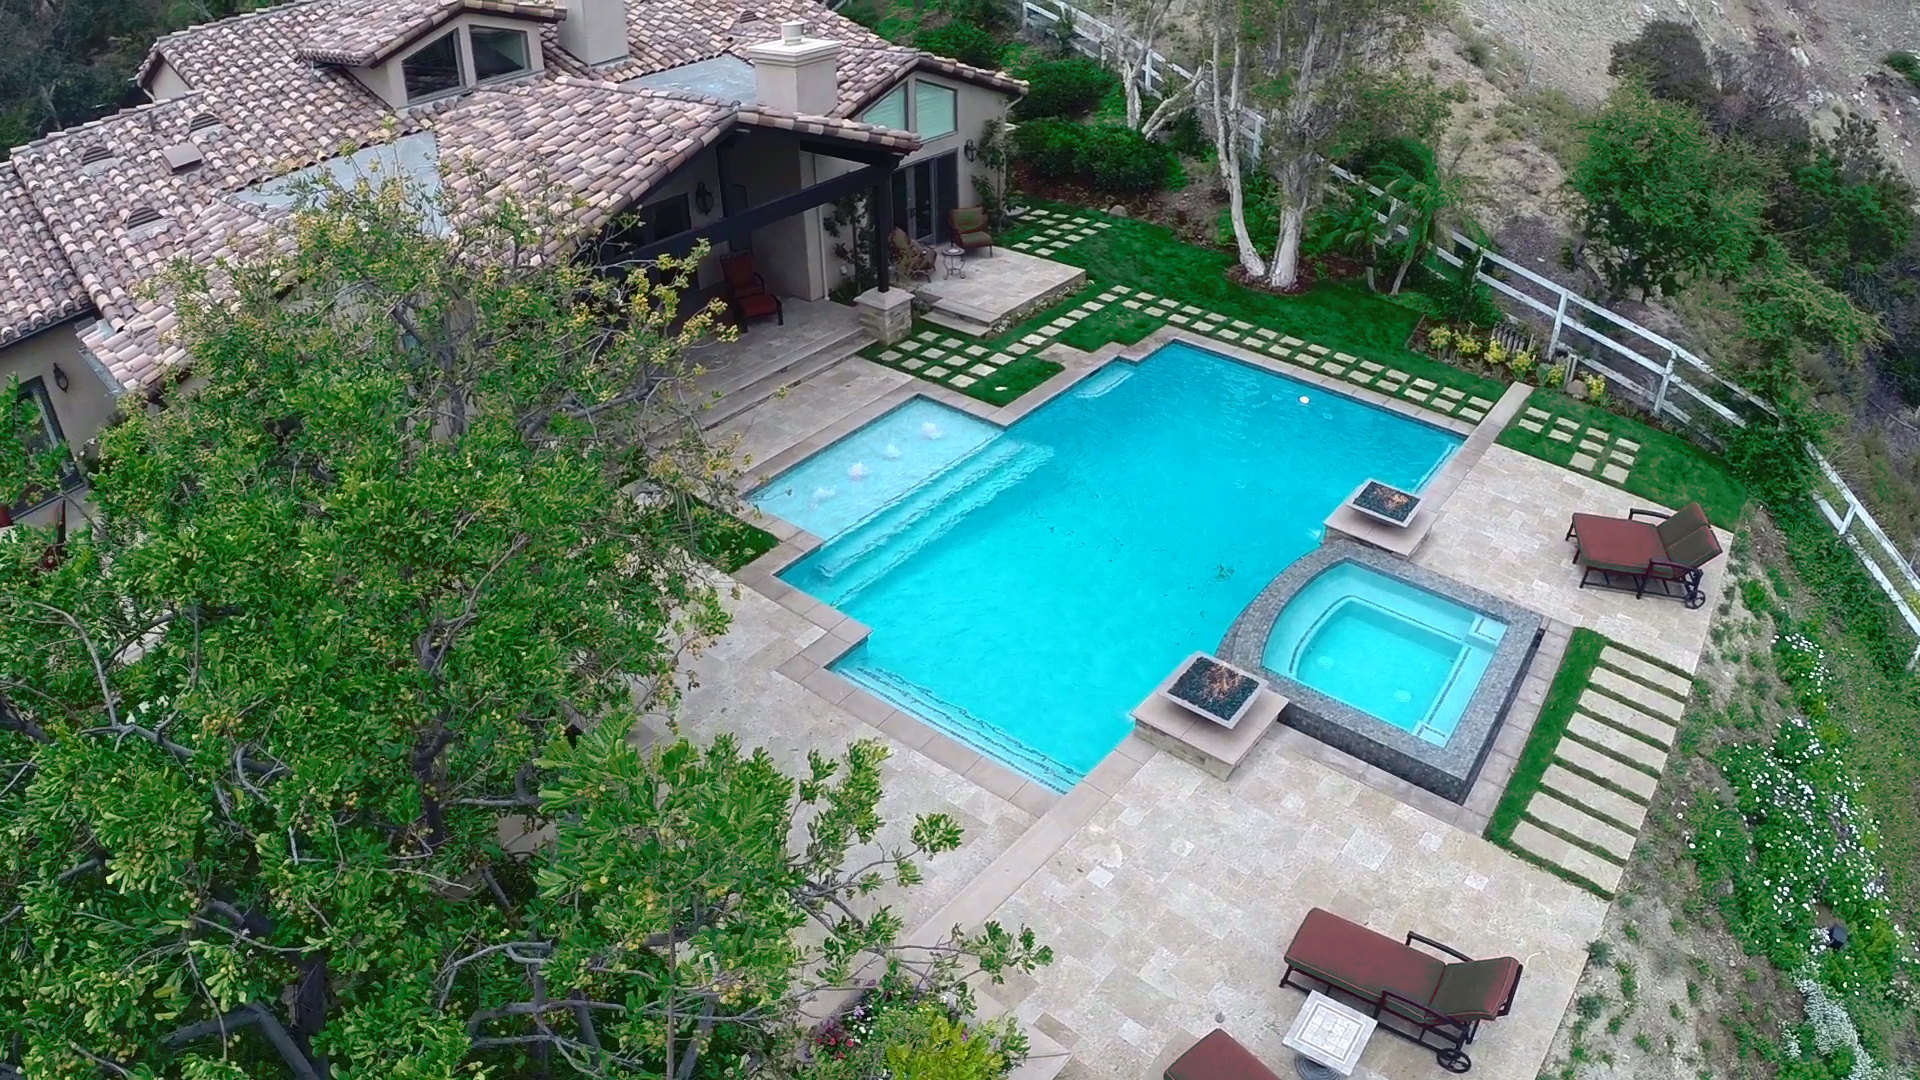 Aerial Drone StillDrone Video Allows Us To Film Shots Of Swimming Pools And Landscaping